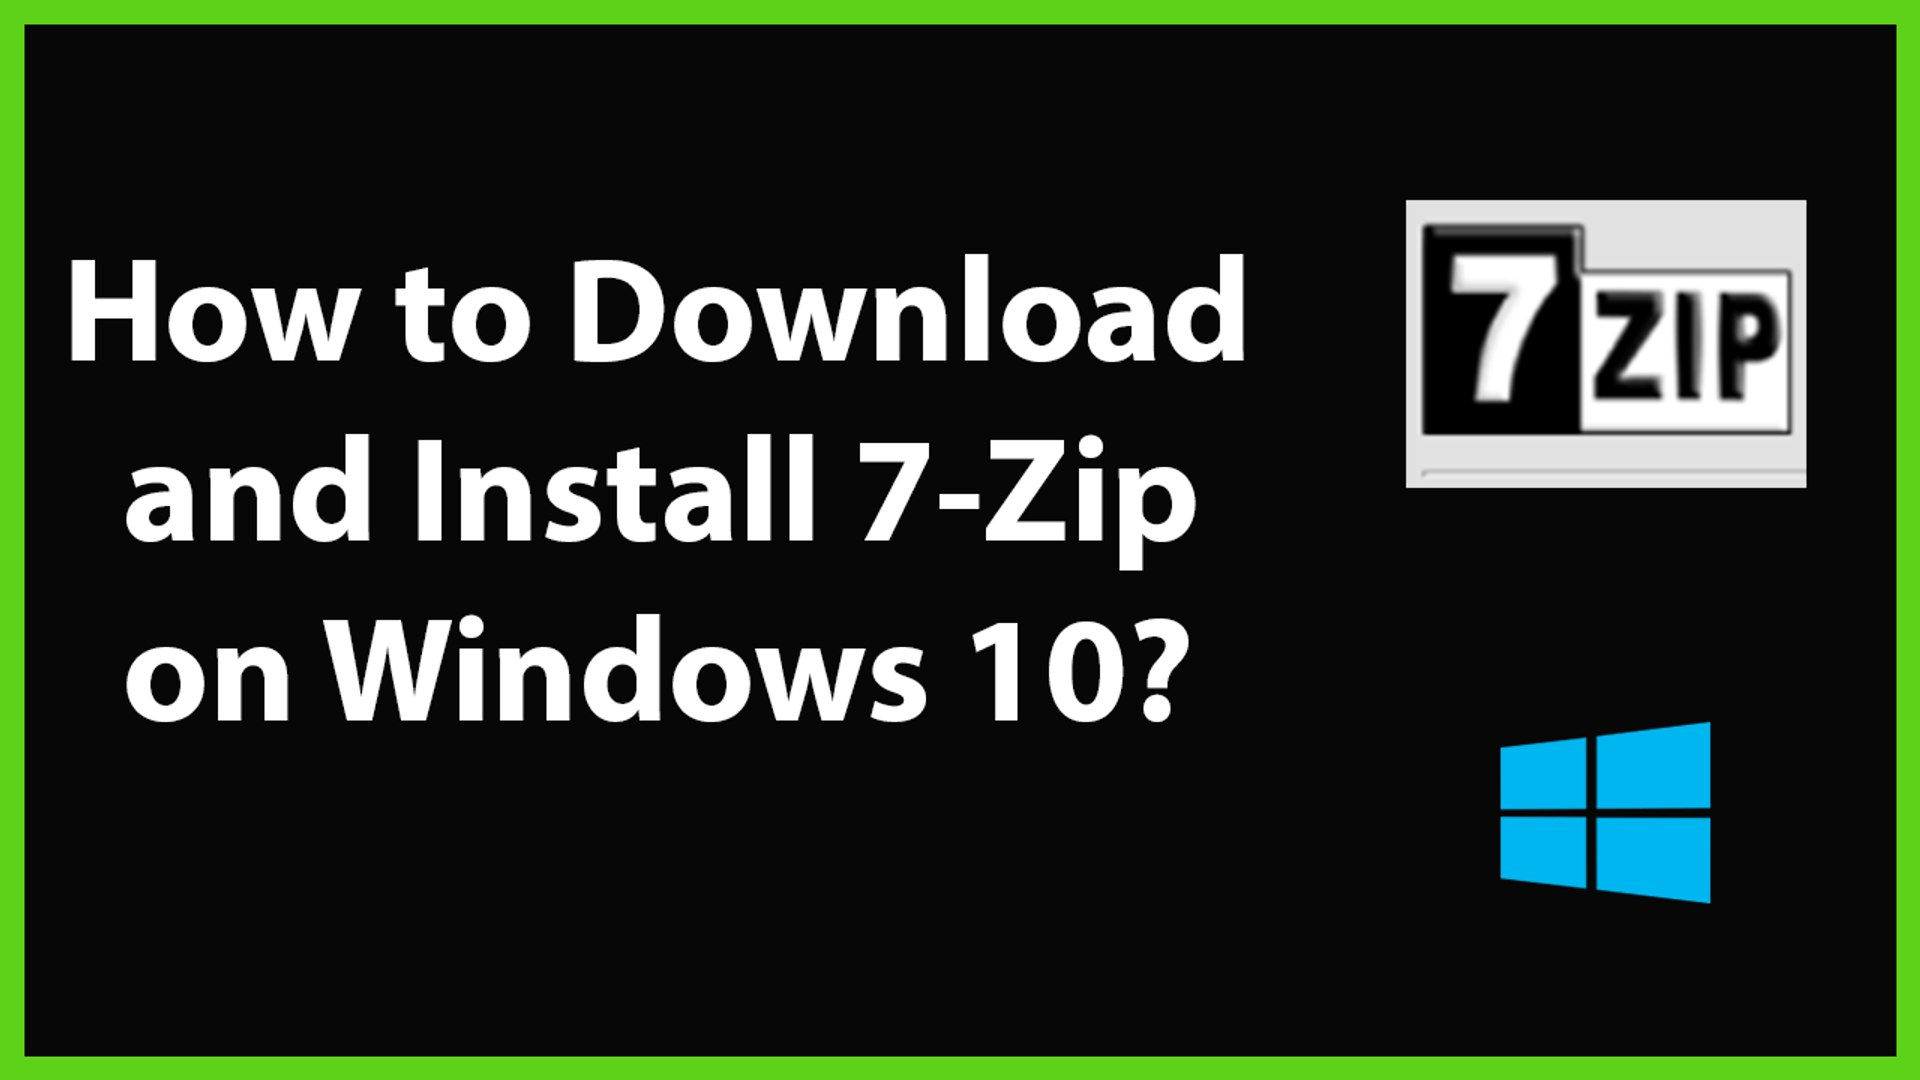 How to Download and Install 7-Zip on Windows 10? - video